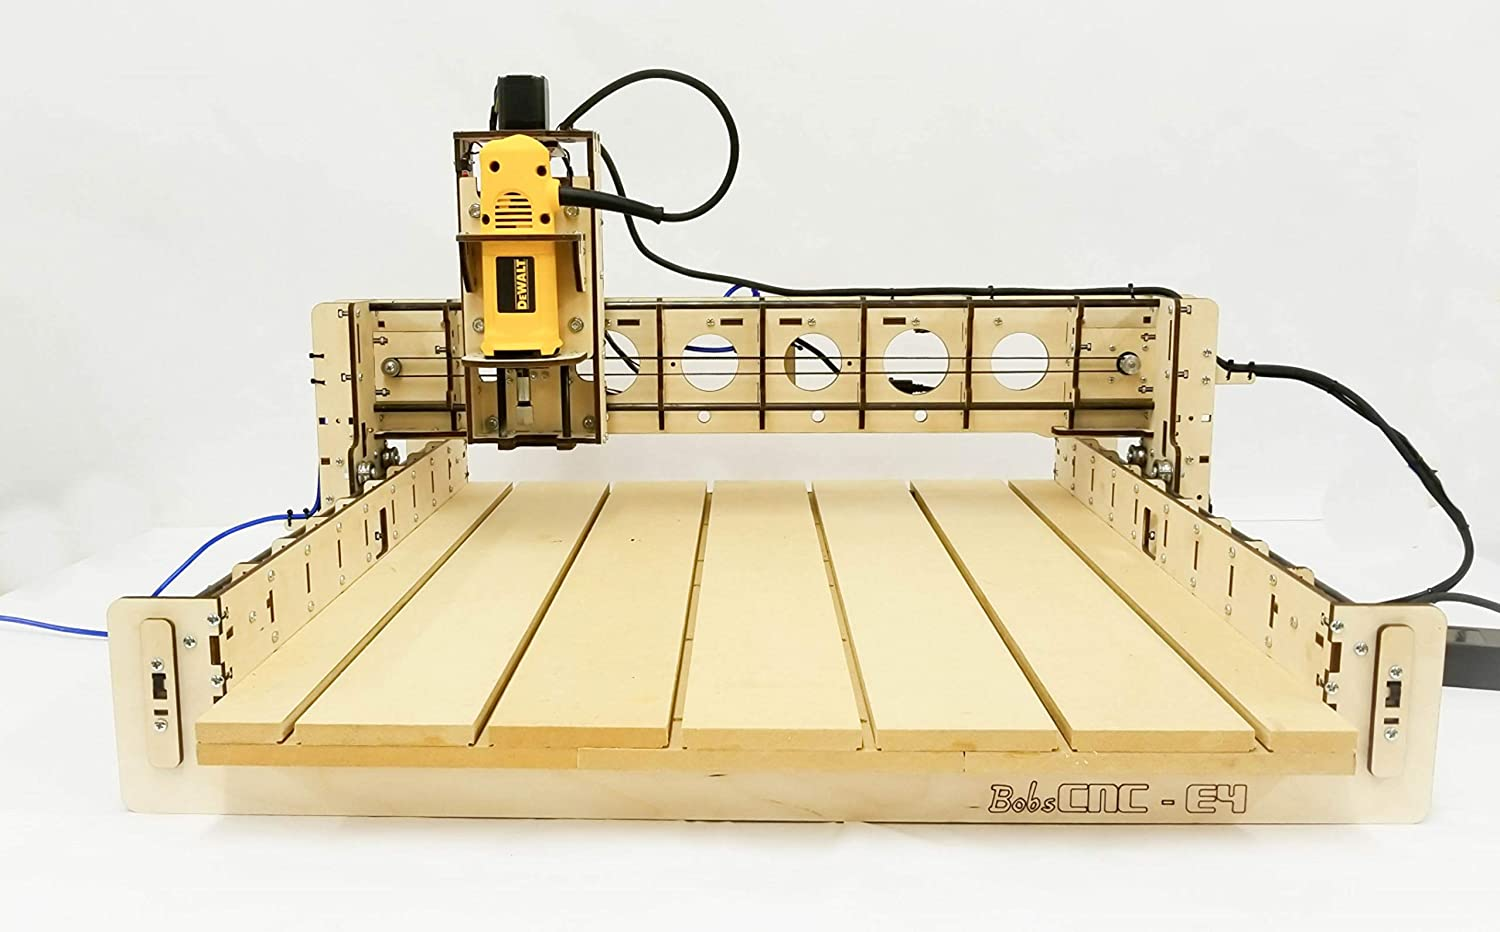 BobsCNC E4 CNC Router Engraver Kit with the Router Included 610 mm x 610 mm cutting area and 85mm depth of travel